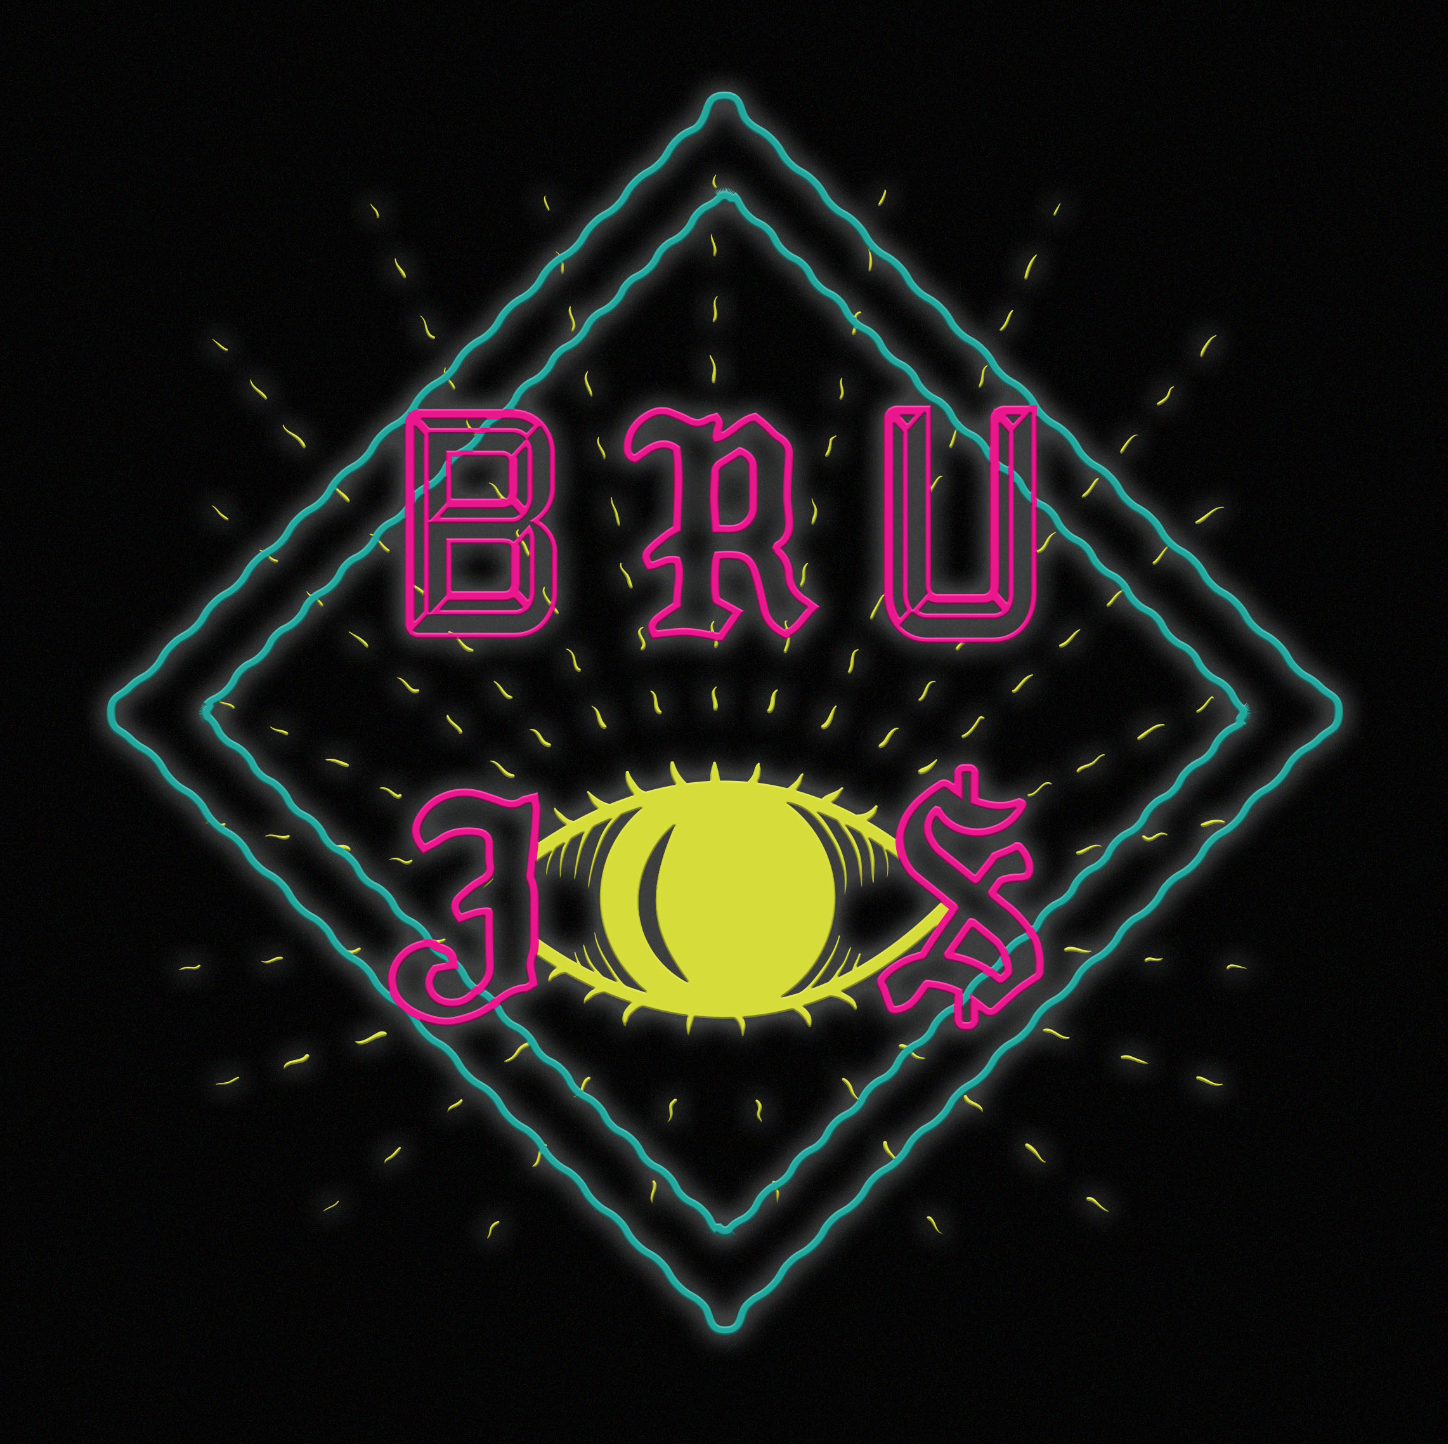 """Branding for Ricardo Gamboa's web series """"BRUJOS""""a web series following four gay Latino grad students that are also witches as they try and survive the semester and a witch-hunt led by a secret society of the straight, wealthy, white male descendants of the first New World colonizers."""